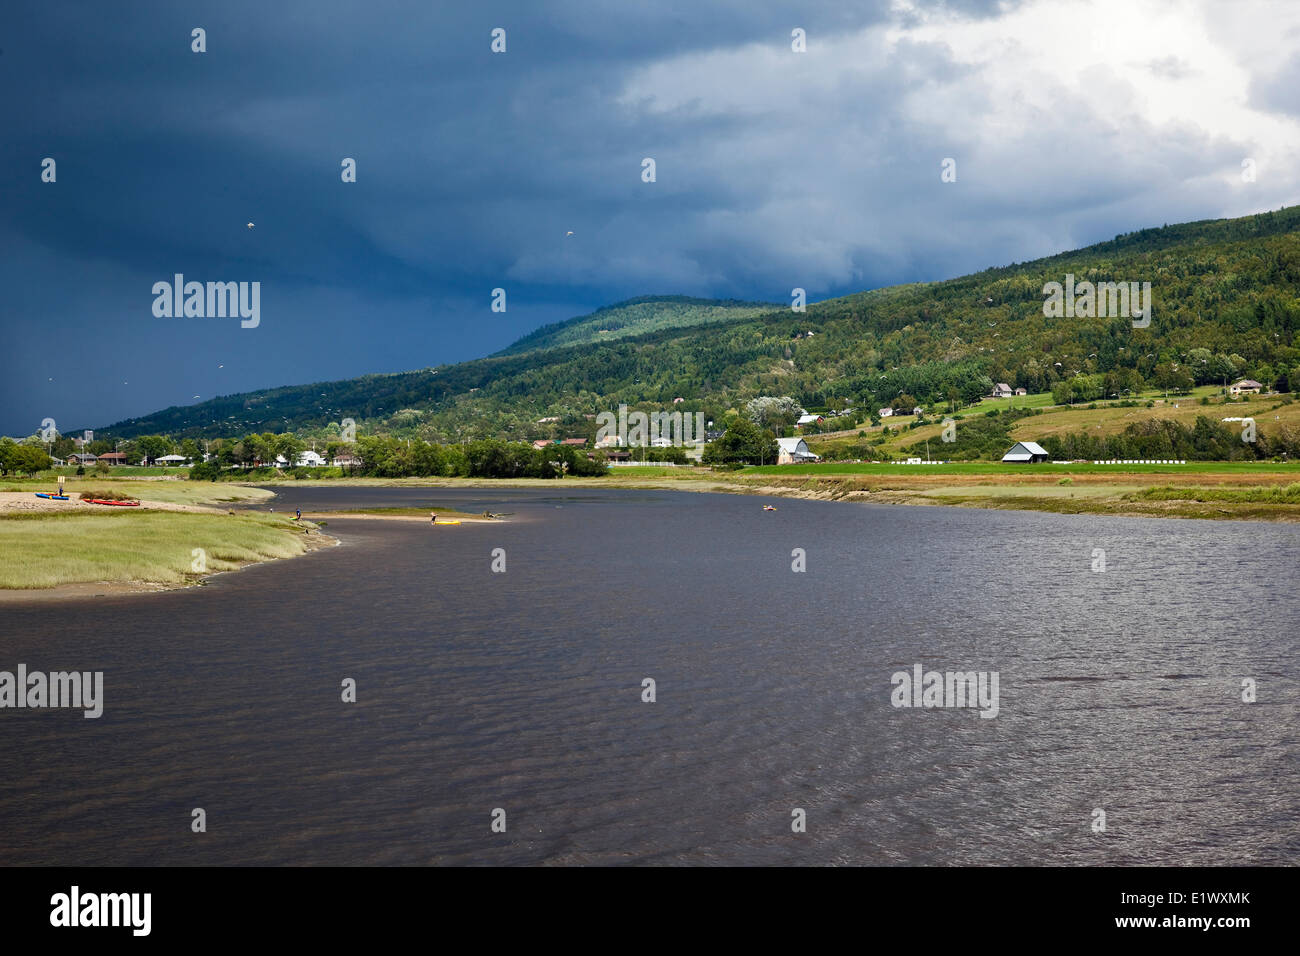 Dark clouds advancing over Riviere du Gouffre (Gouffre River) at the point where it empties into the St. Lawrence - Stock Image